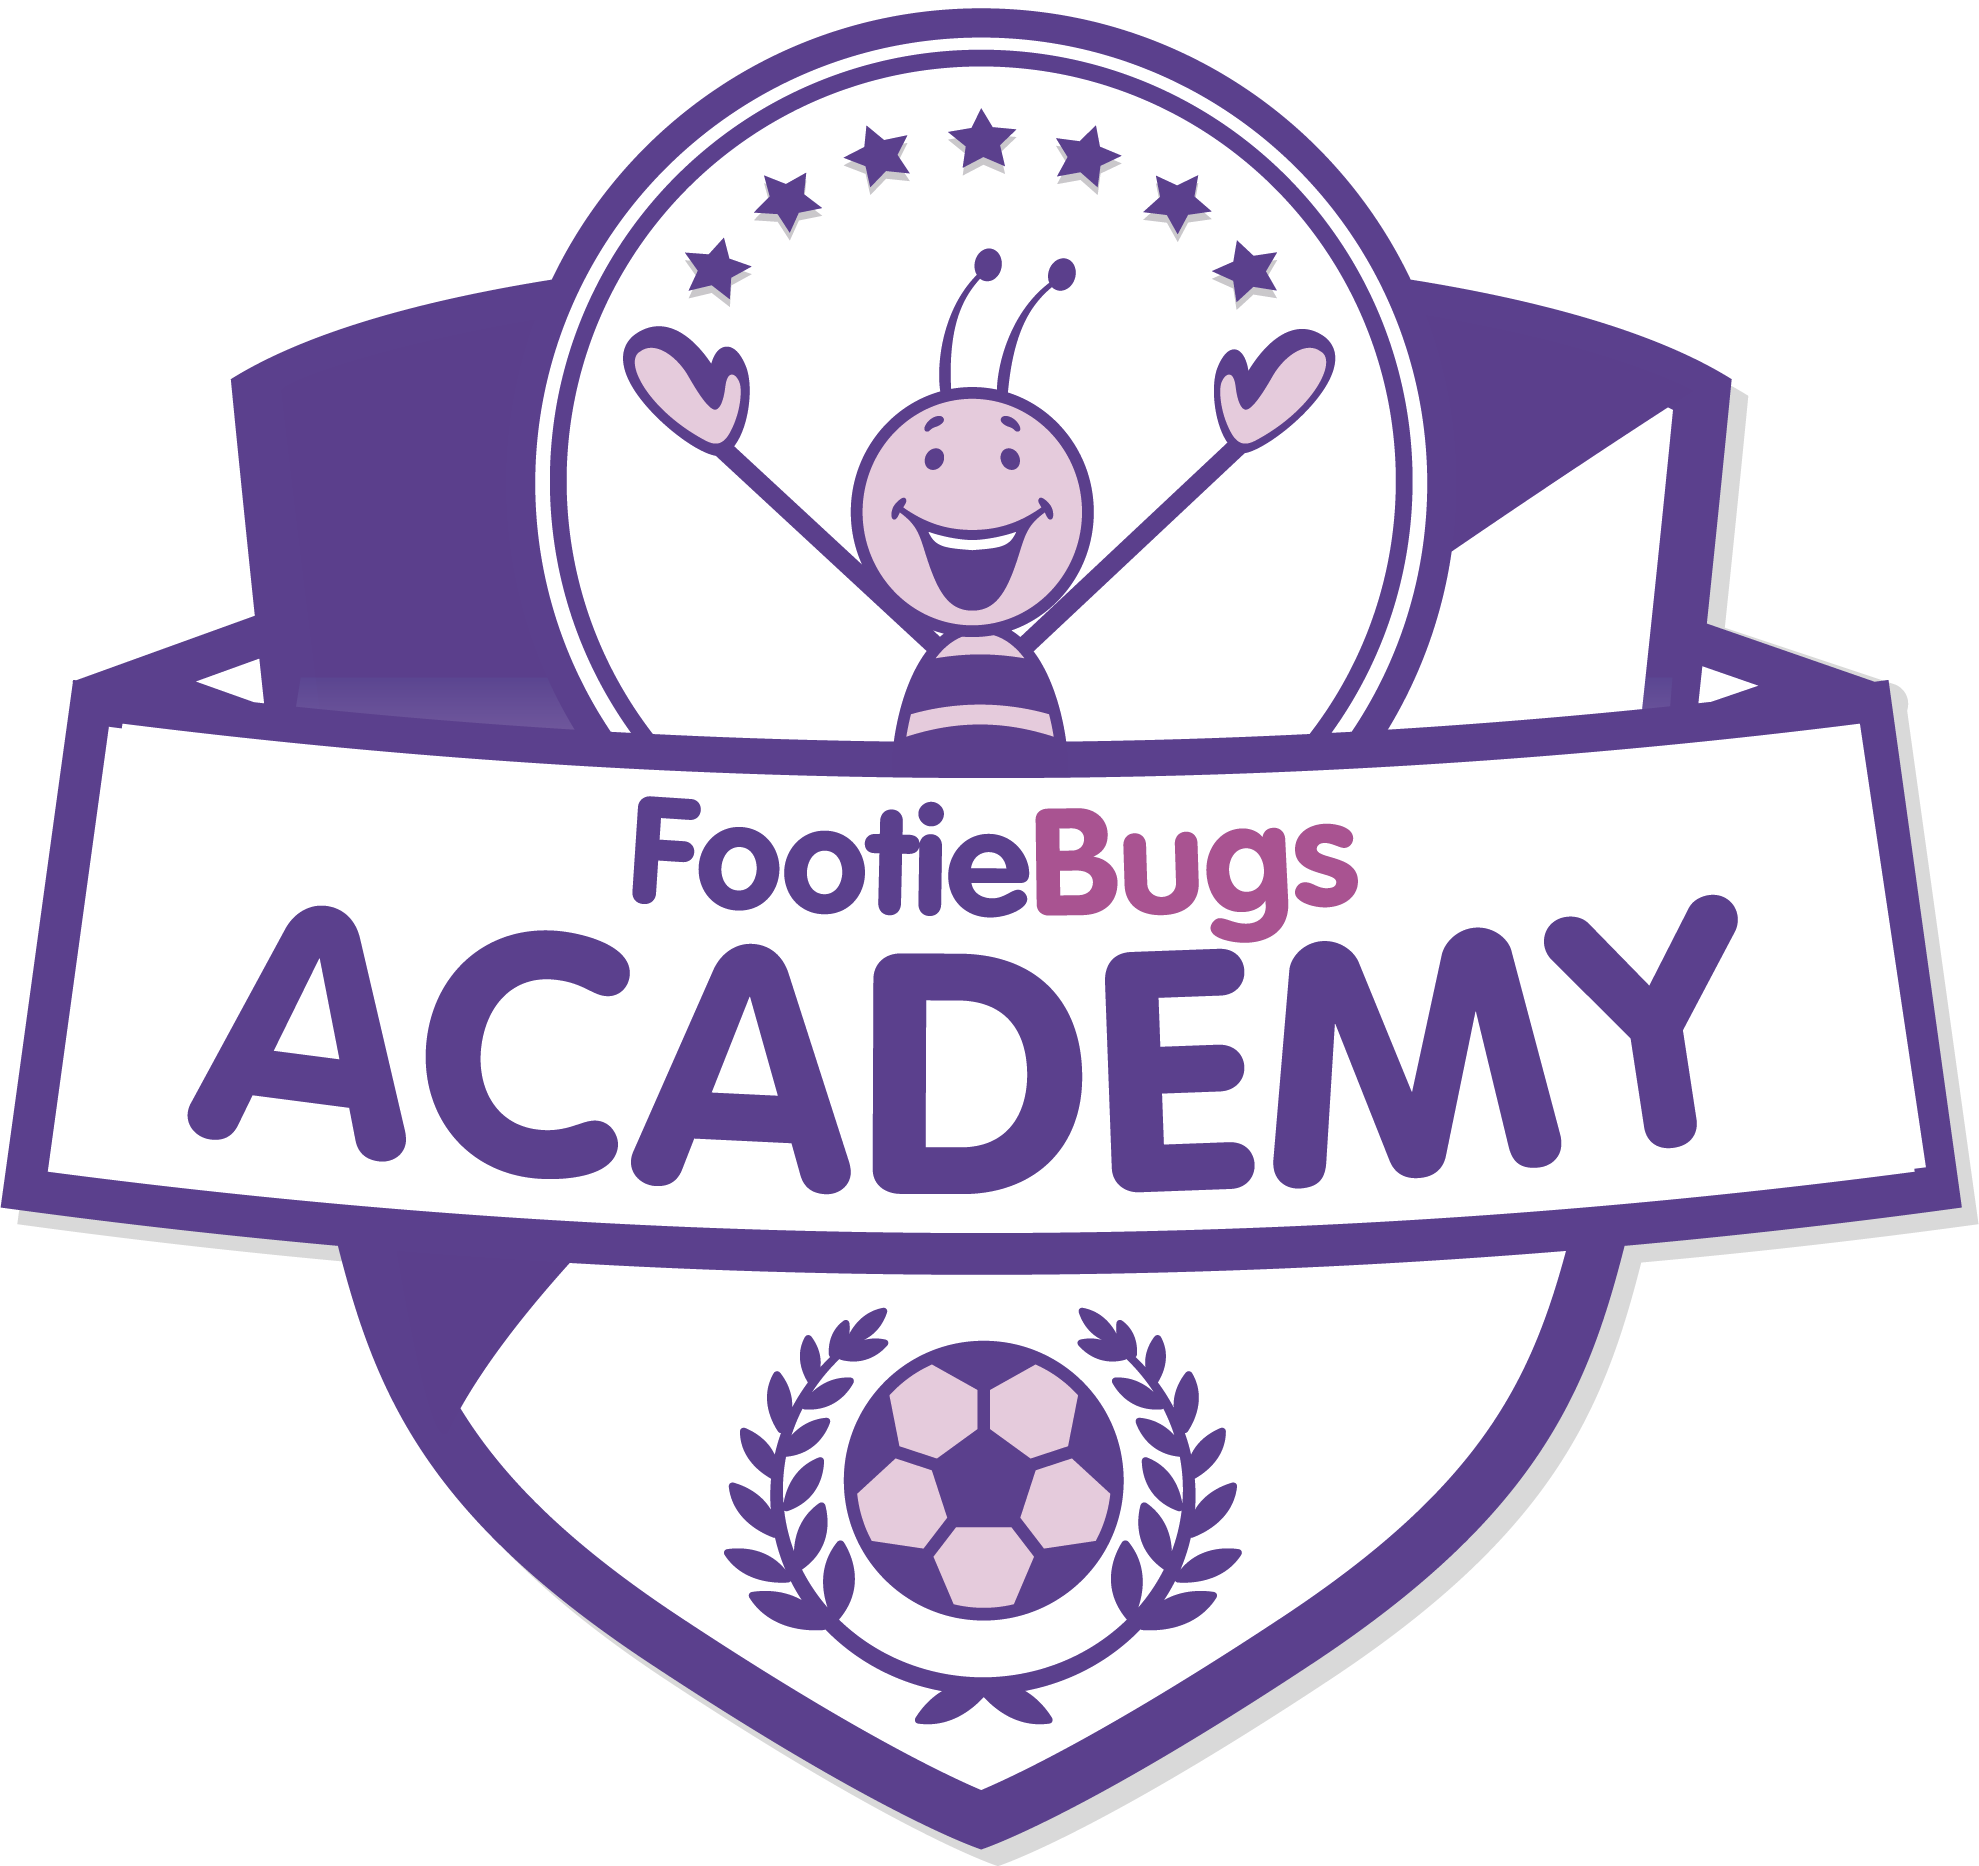 FootieBugs Academy Badge